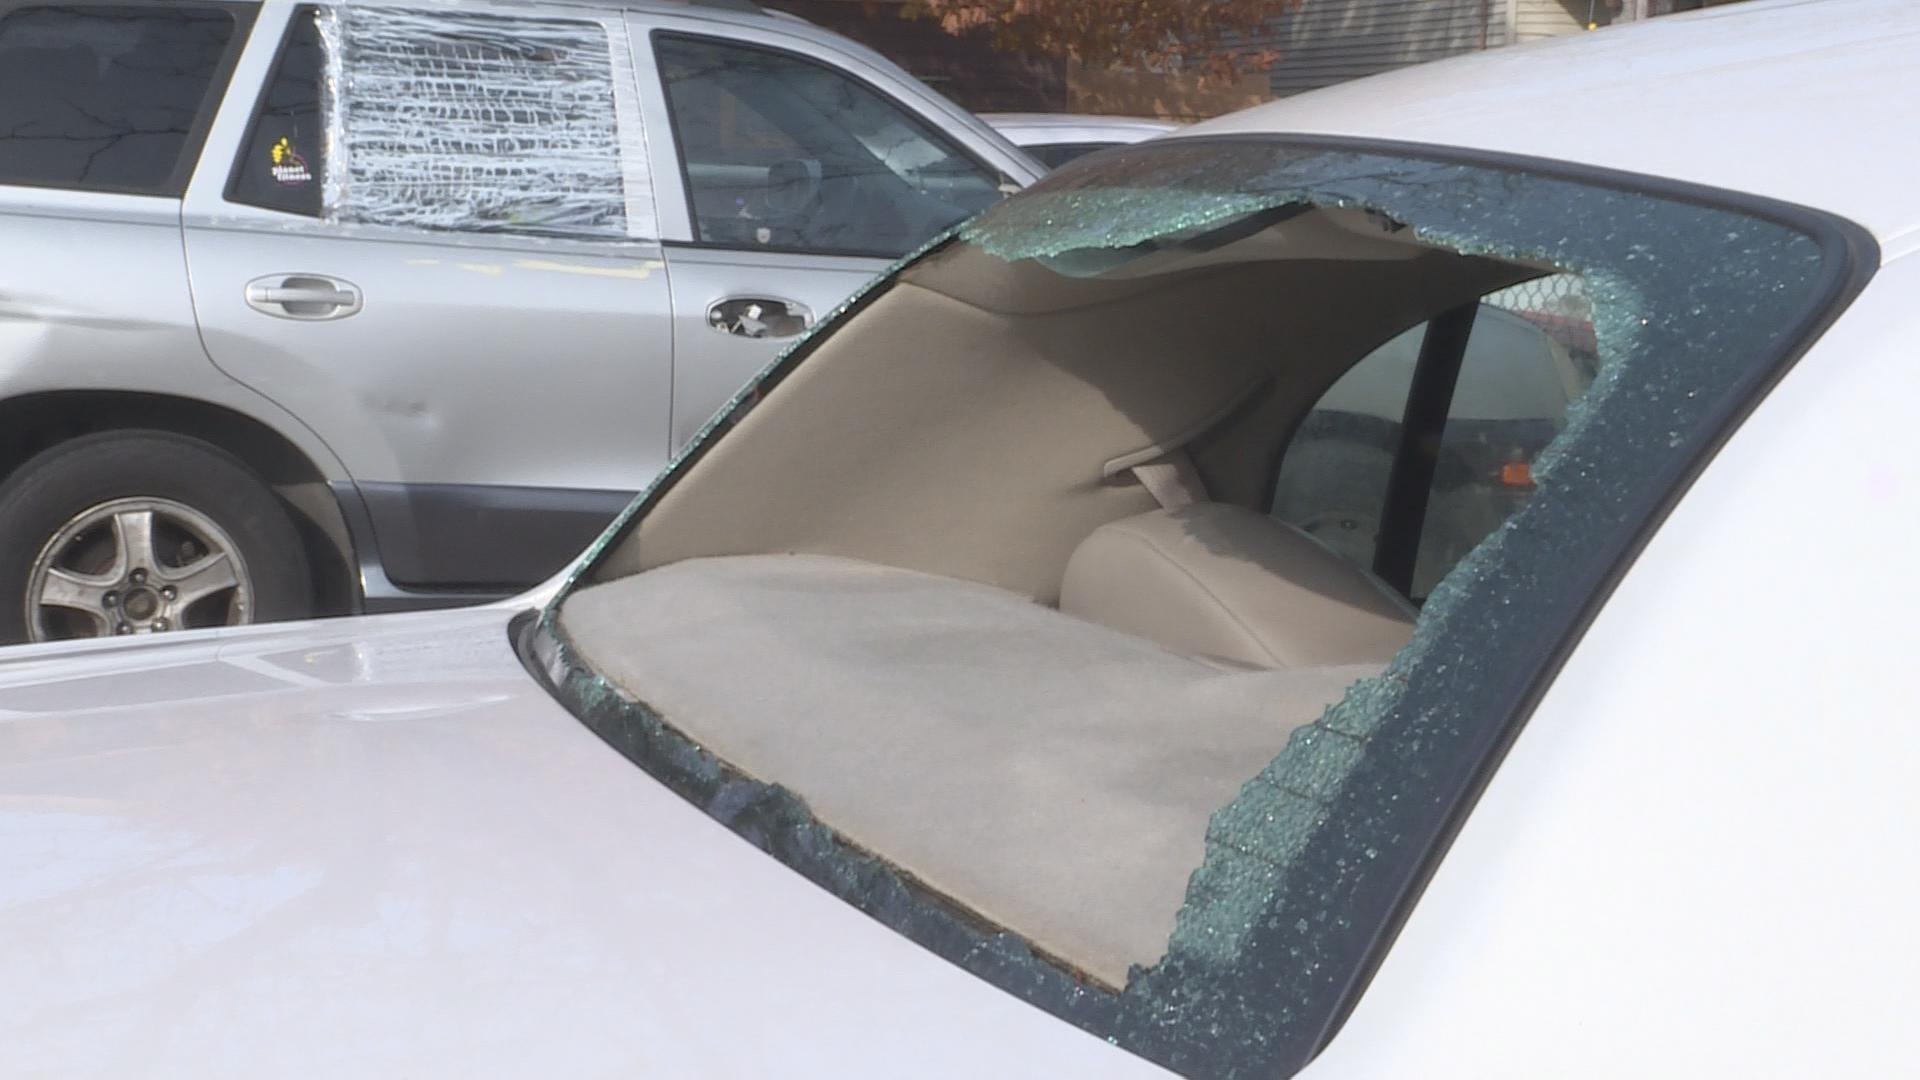 One of five vehicles vandalized overnight Sunday in the parking lot of The Salvation Army shelter on East Washington Ave.